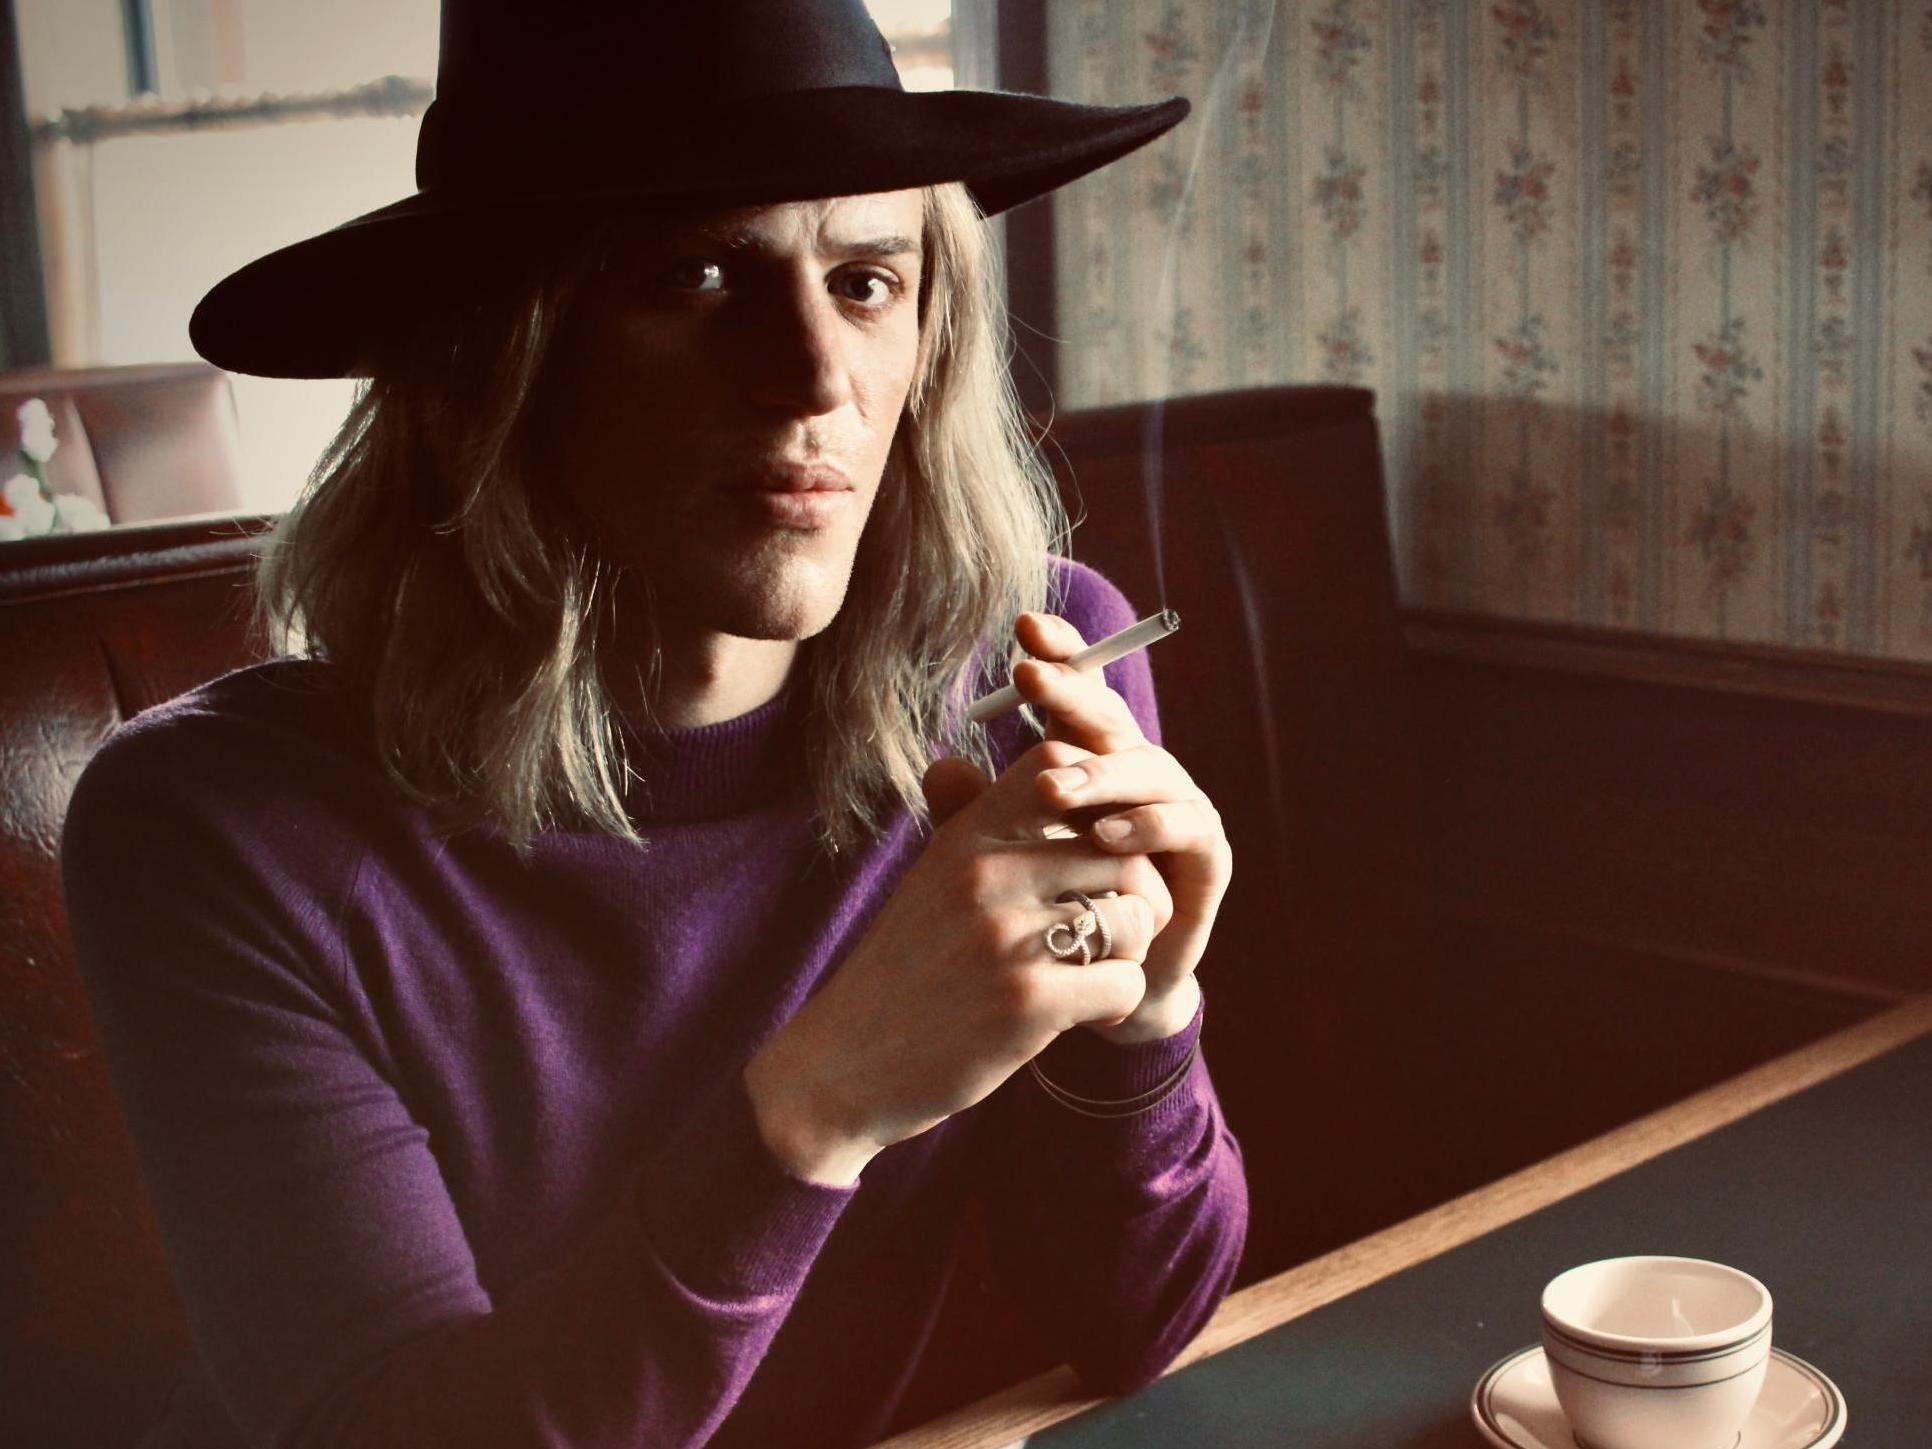 Stardust: First look at Johnny Flynn as a young David Bowie